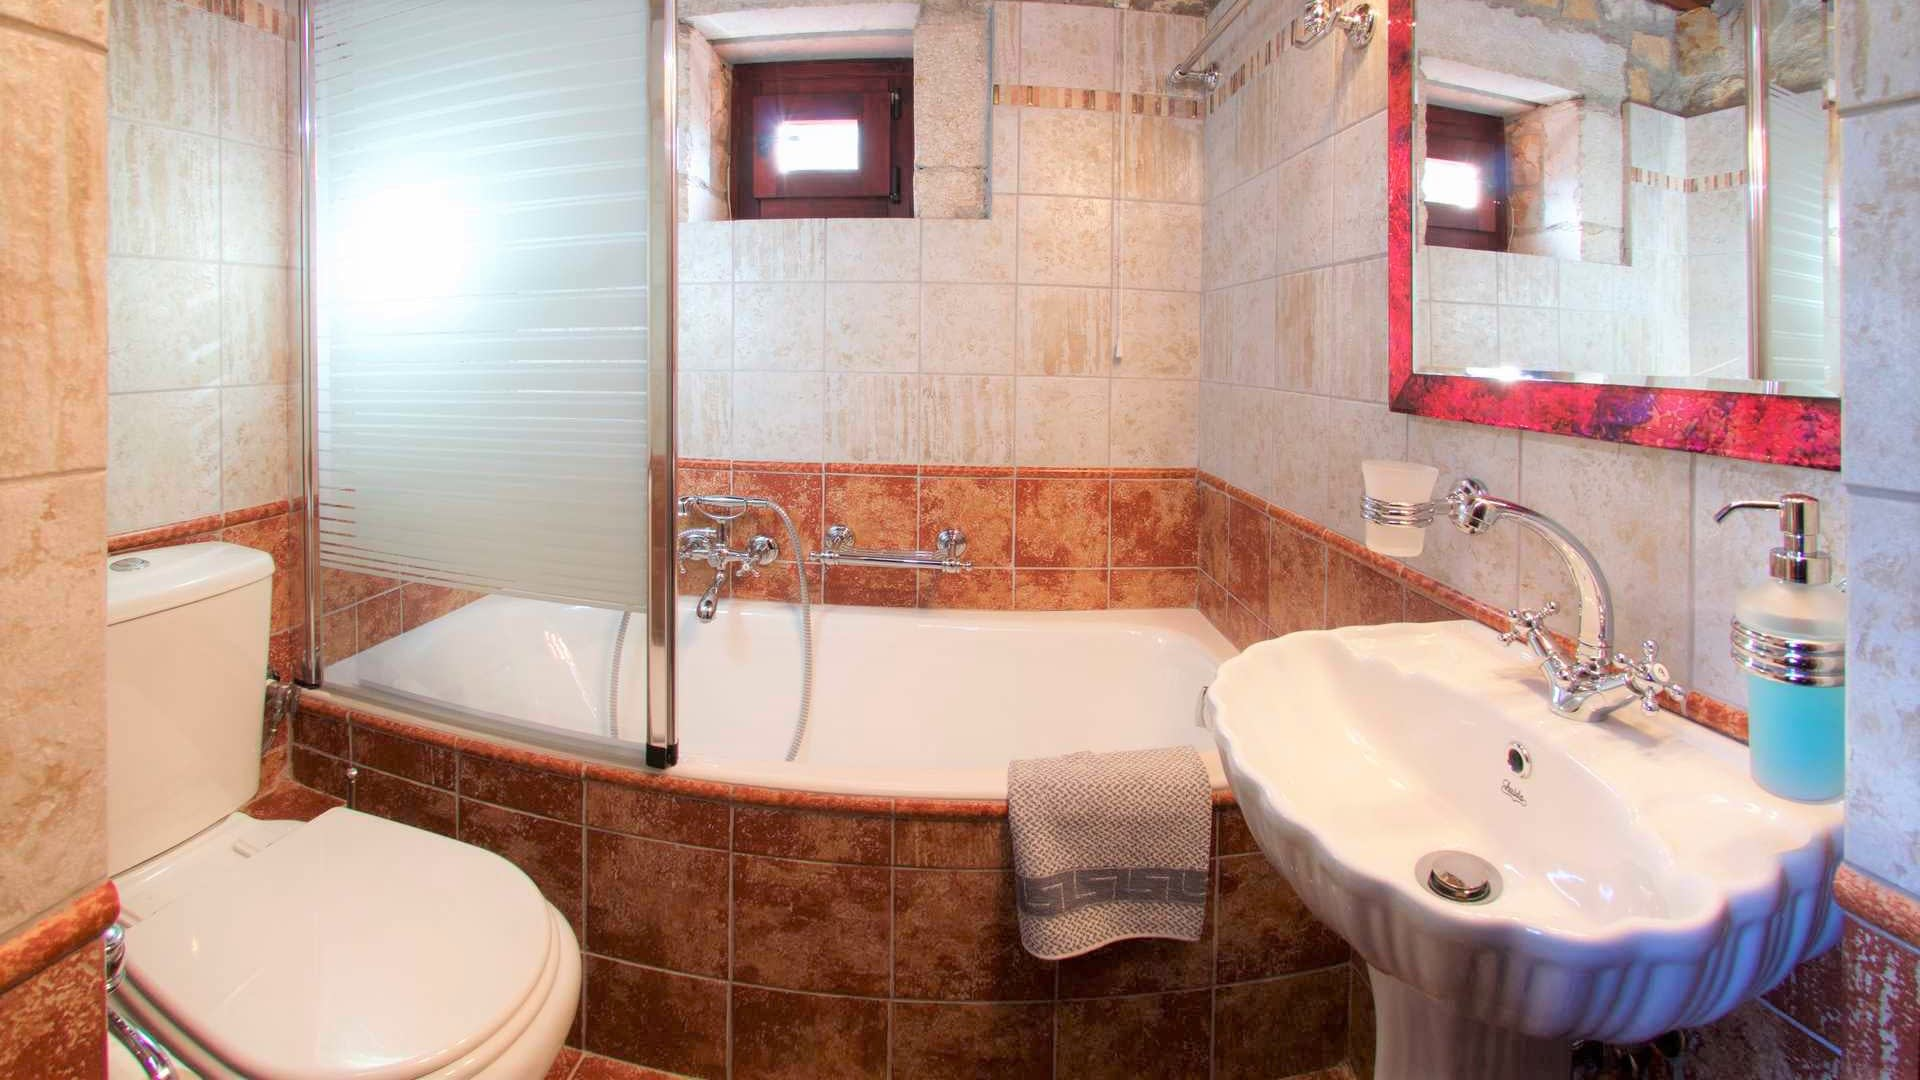 Bathroom of stone villa for rent in Ithaca Greece, Pilikata